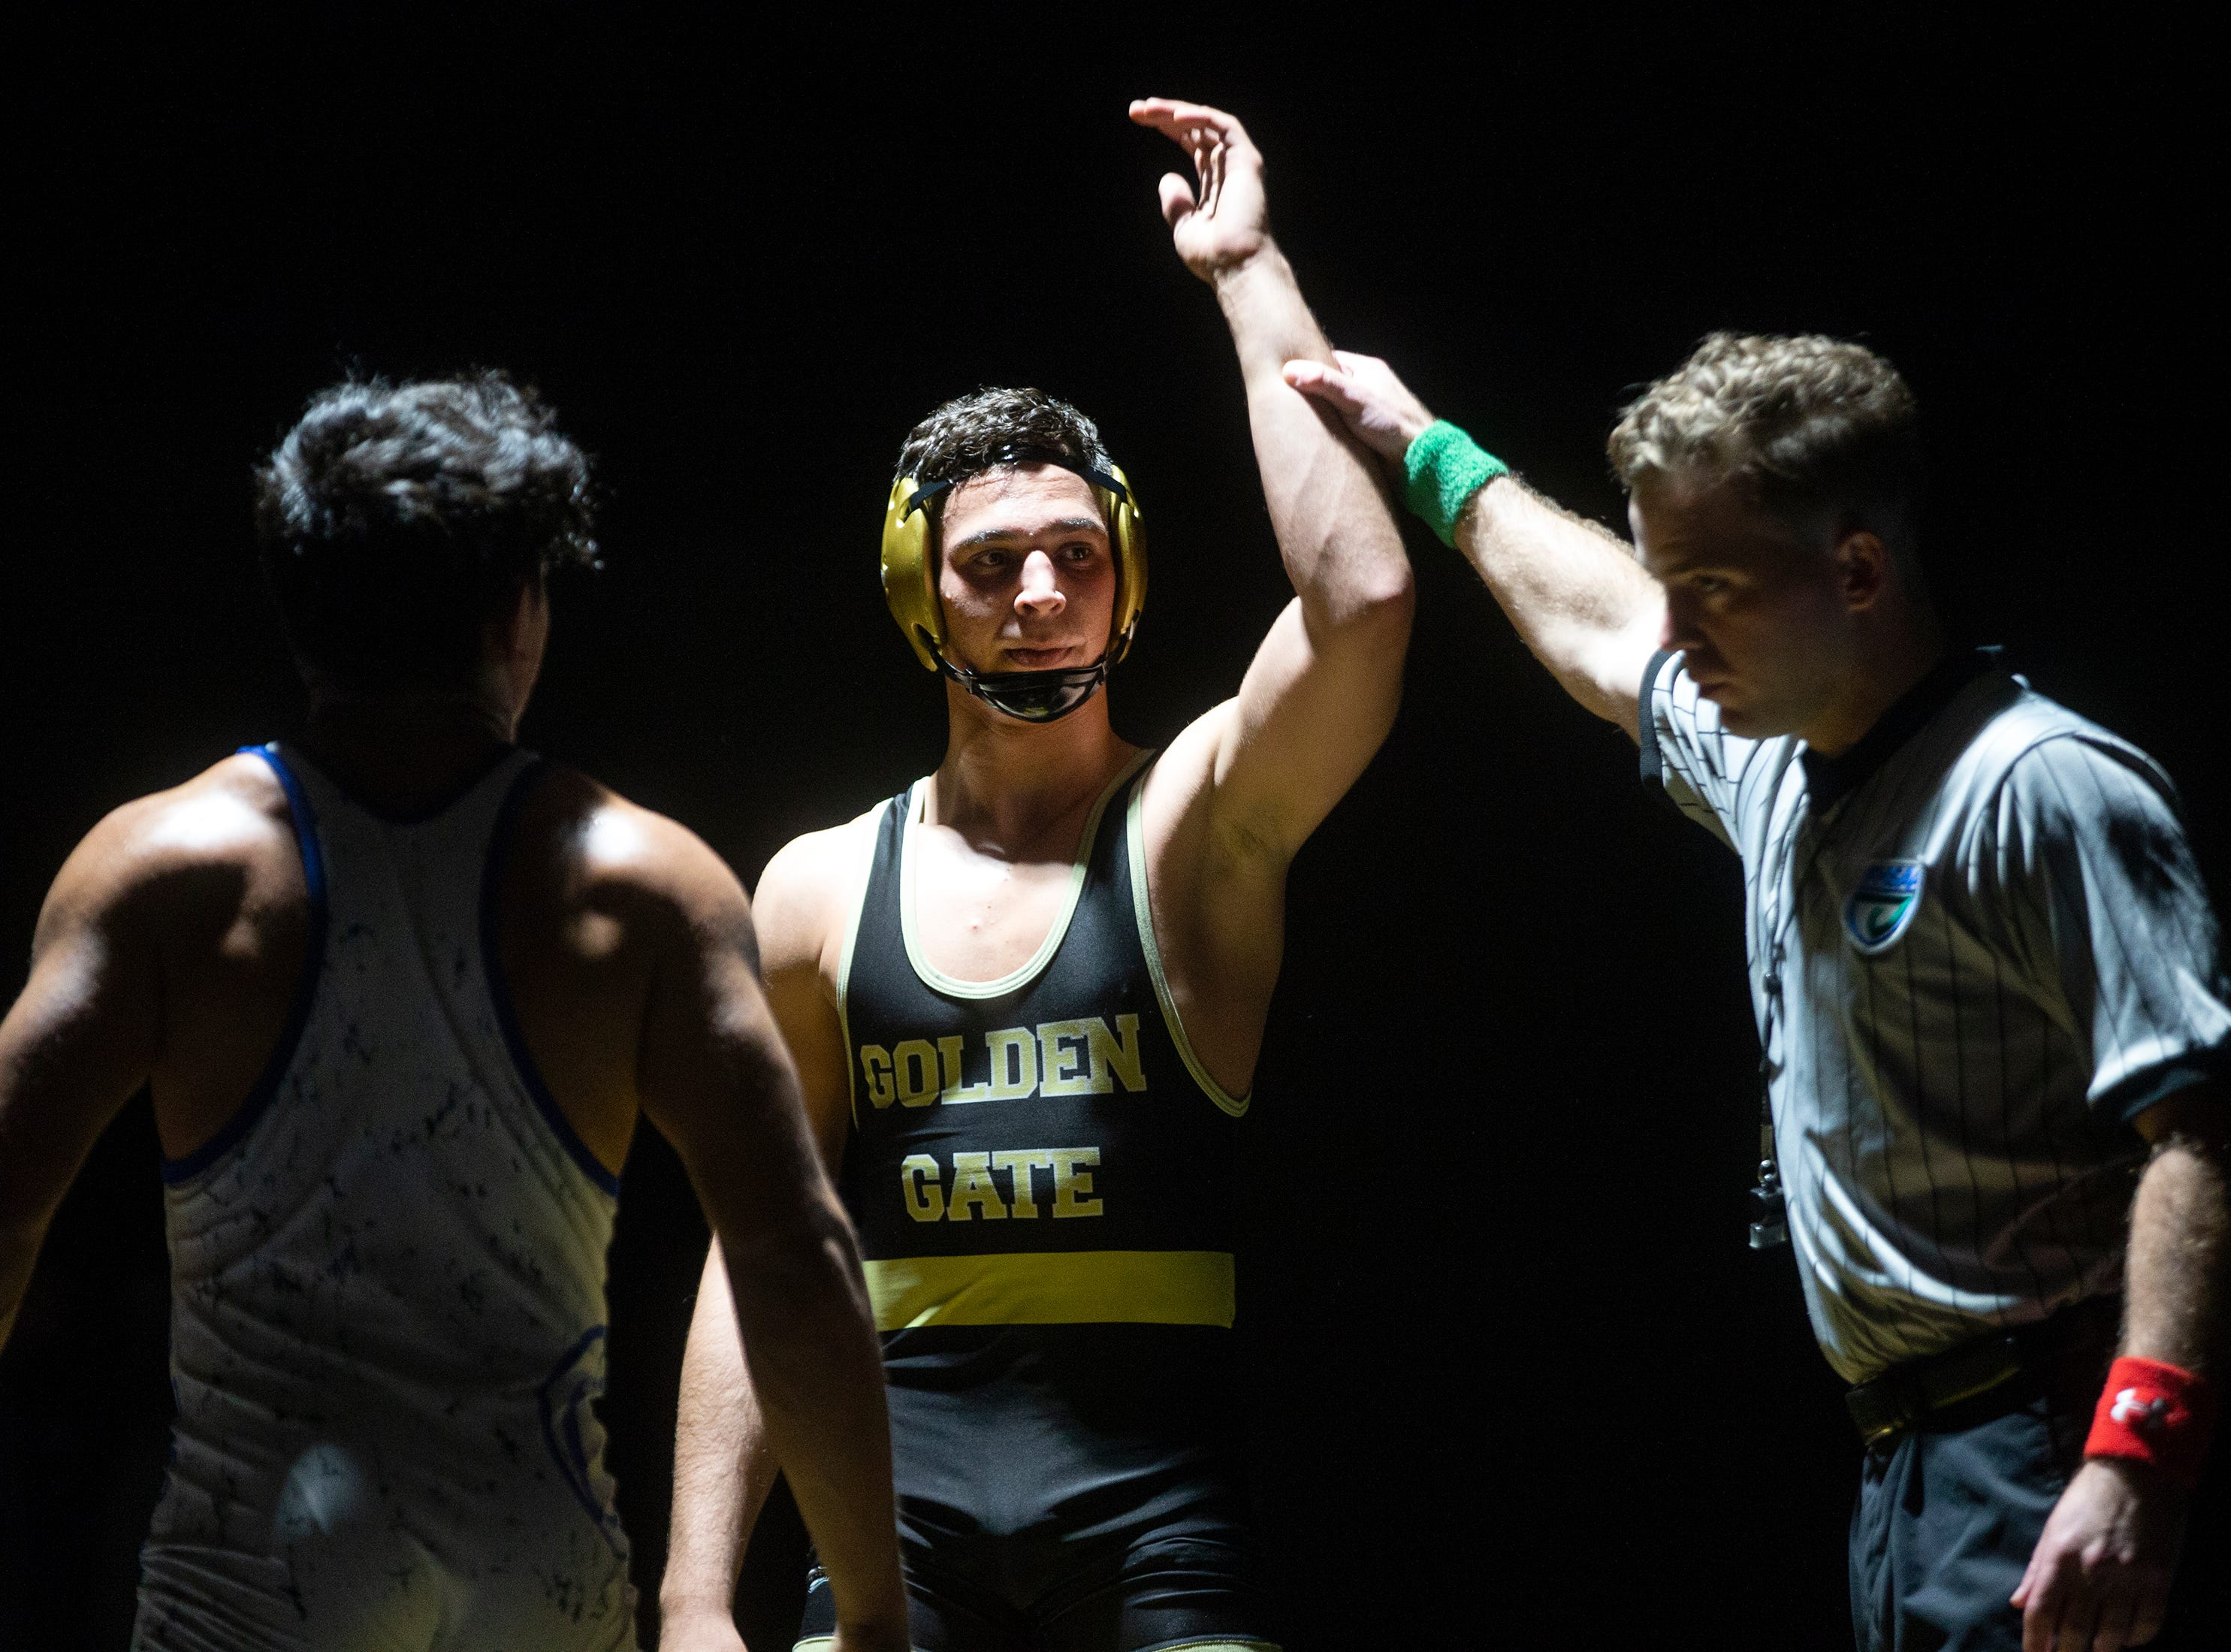 Golden Gate High School's Andy Martinez defeats Barron G. Collier High School's Justin Ugarte in the 145-pound weight class during the Collier County Athletic Conference wrestling championship, Wednesday, Jan. 9, 2018, at Naples High School.